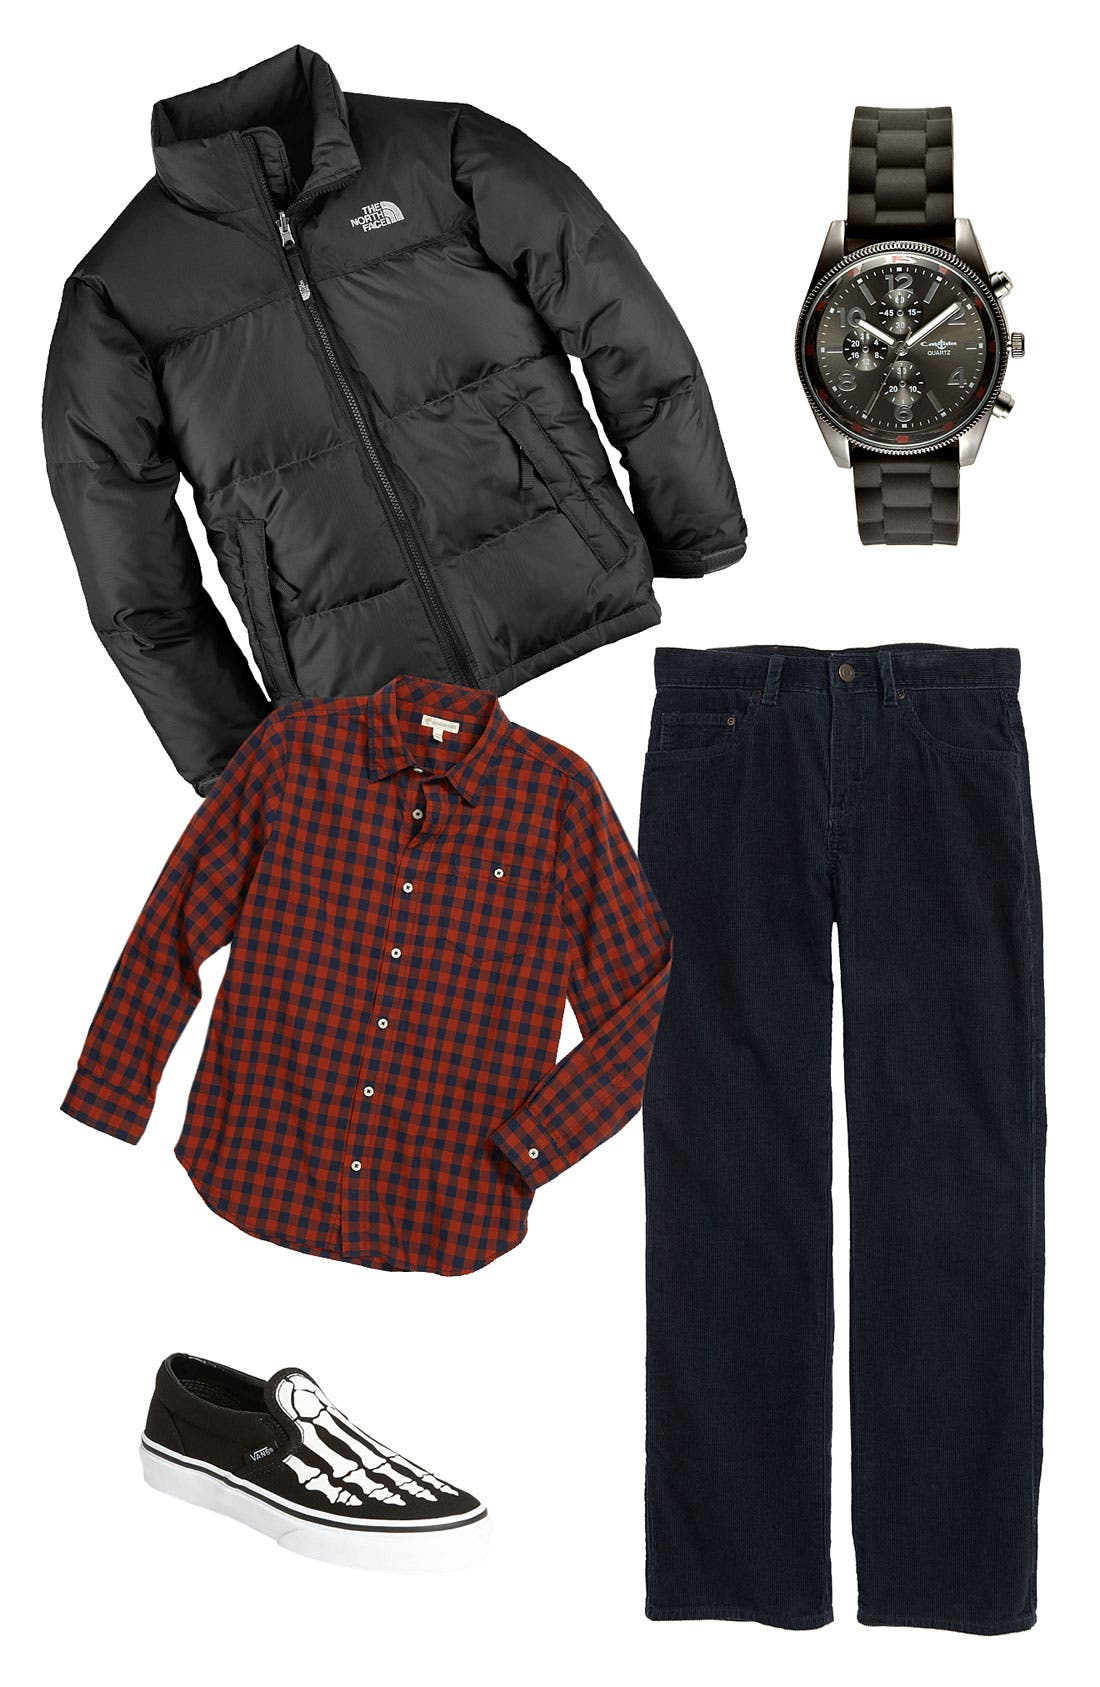 Alternate Image 1 Selected - The North Face Jacket & Tucker + Tate Shirt & Pants (Big Boys)